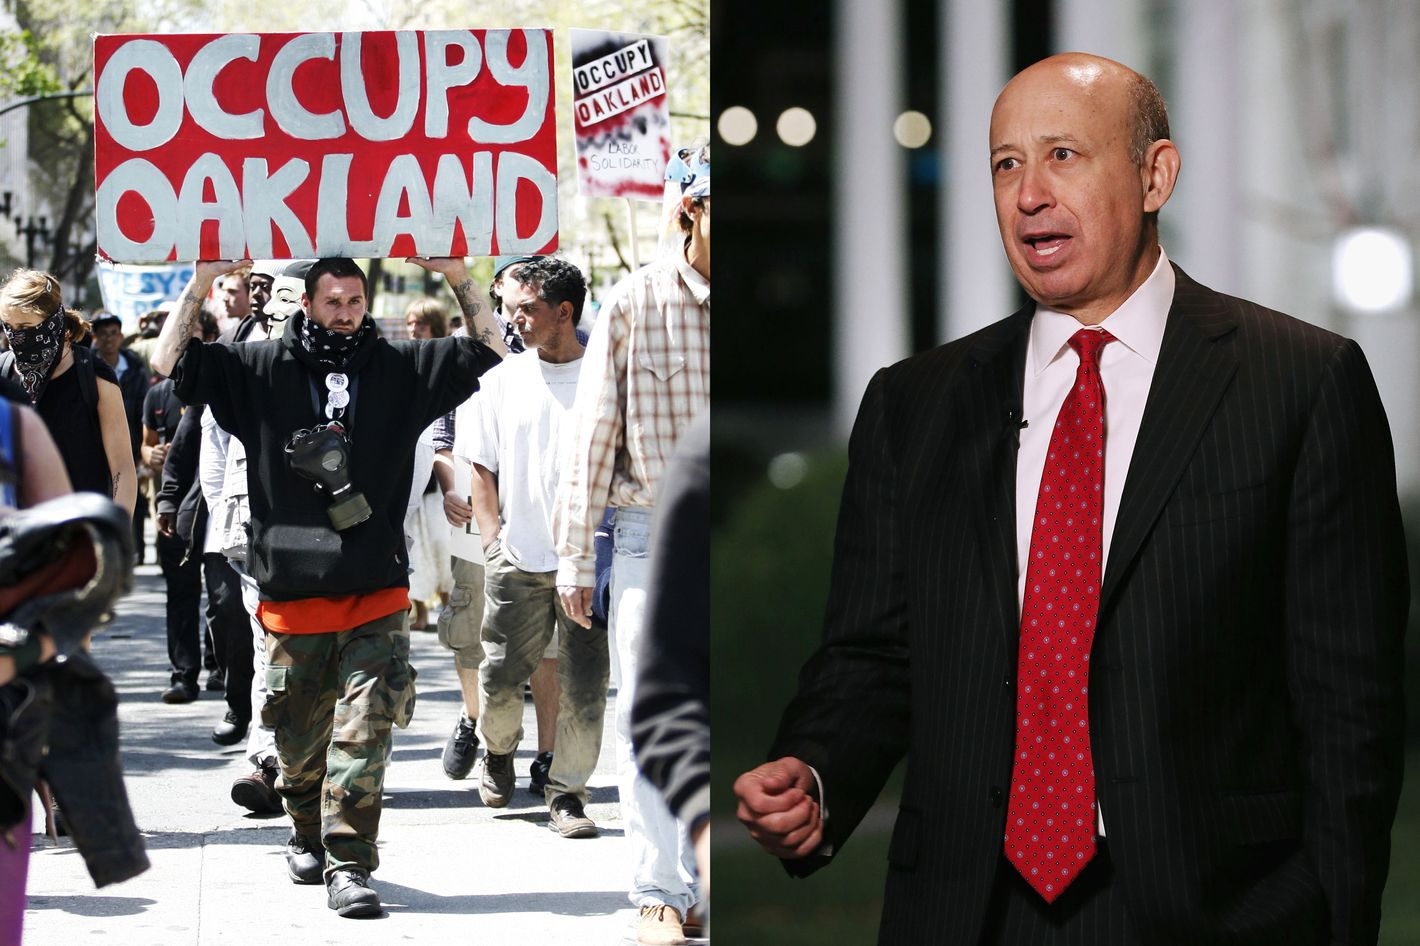 Occupy Oakland vs. Lloyd Blankfein